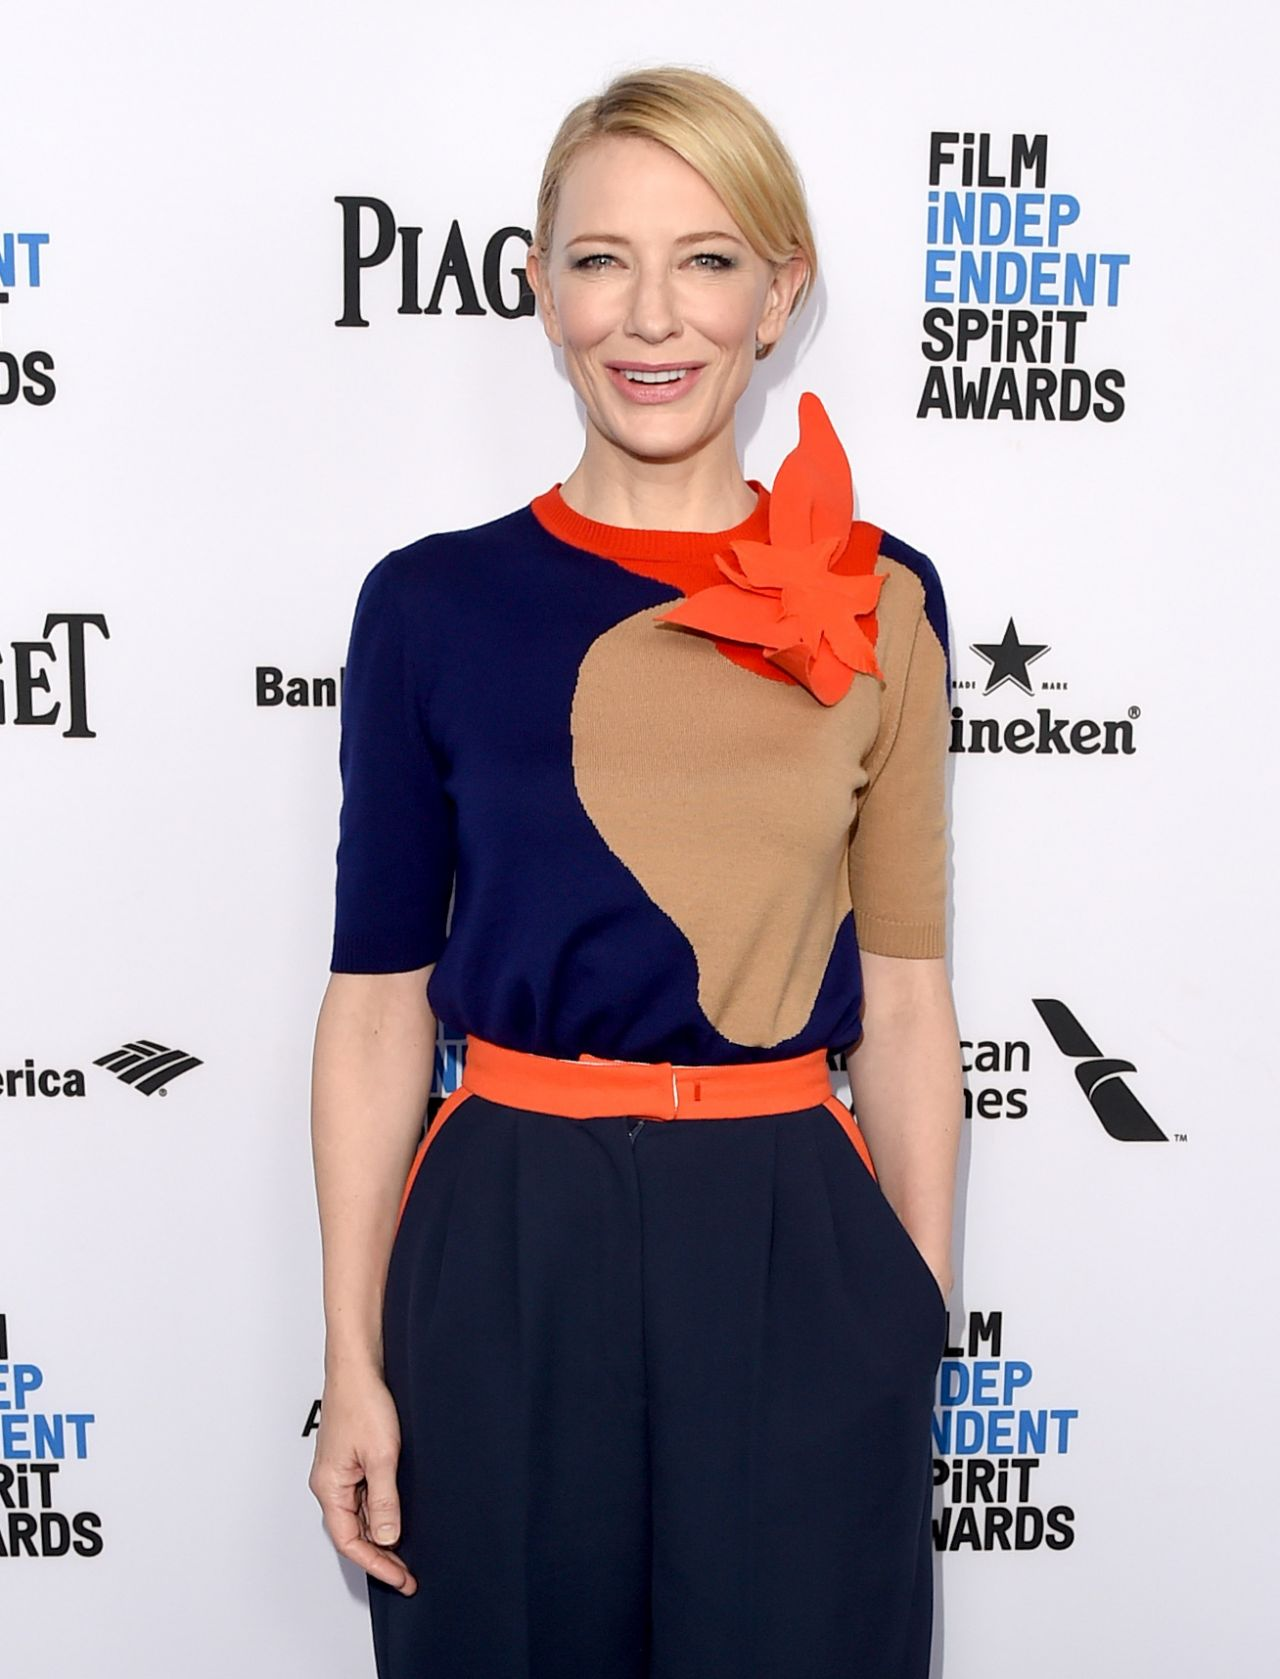 cate-blanchett-2016-film-independent-filmmaker-grant-and-spirit-award-nominees-brunch-in-west-hollywood-ca-6